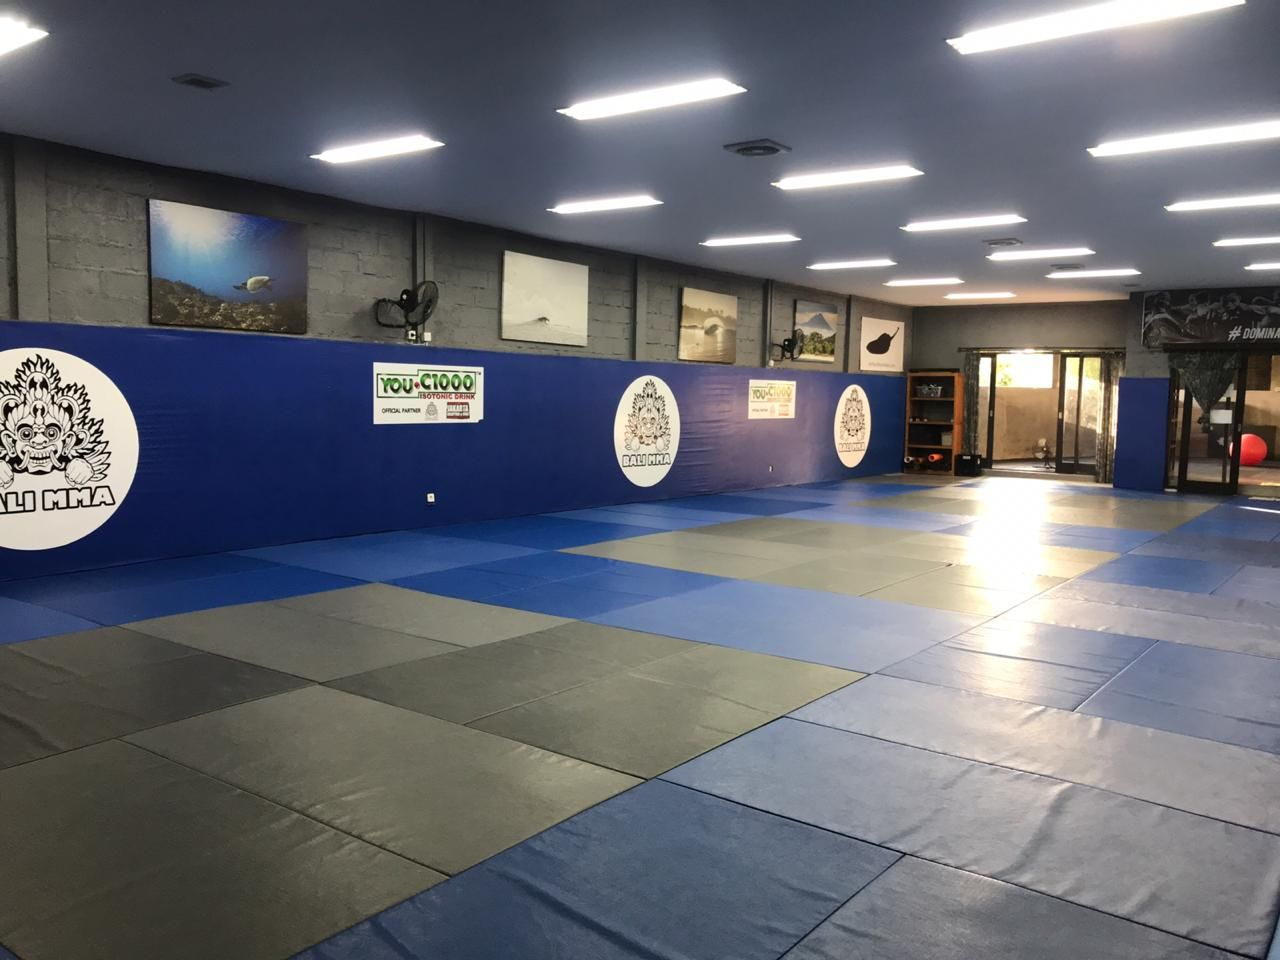 The renovated Bali MMA gym in Indonesia, finished in 2020